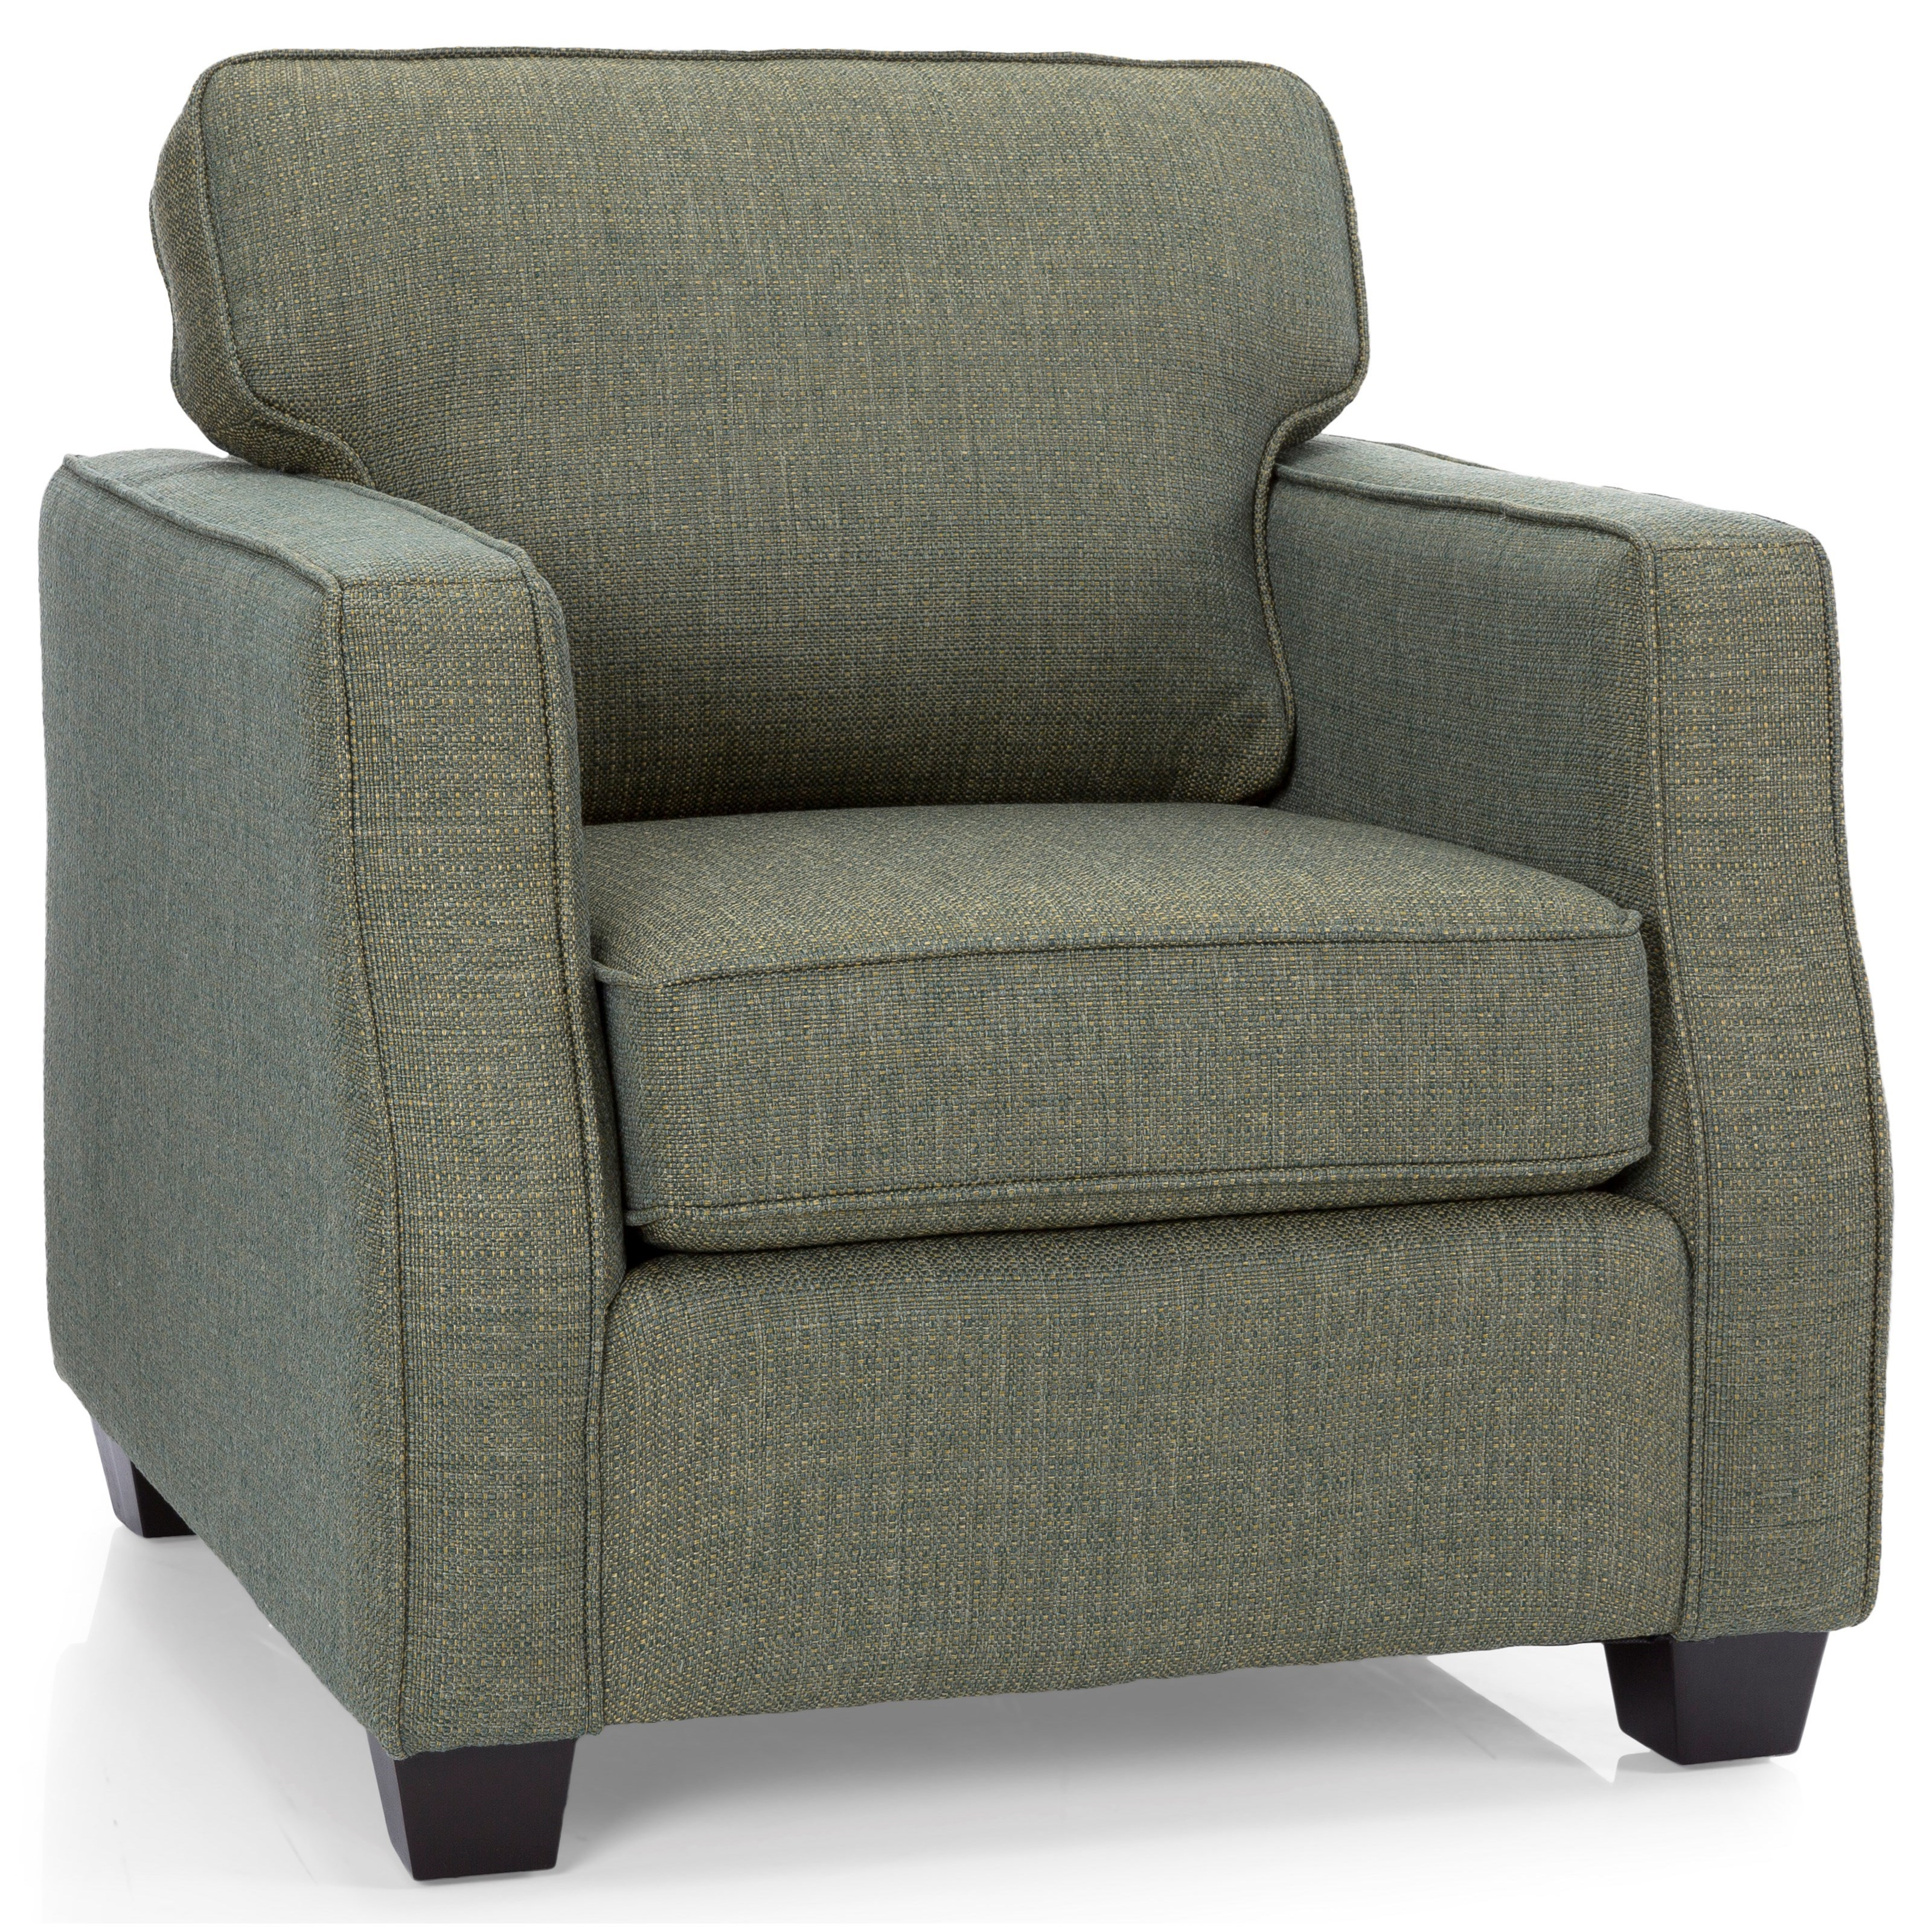 2570 Chair by Decor-Rest at Stoney Creek Furniture